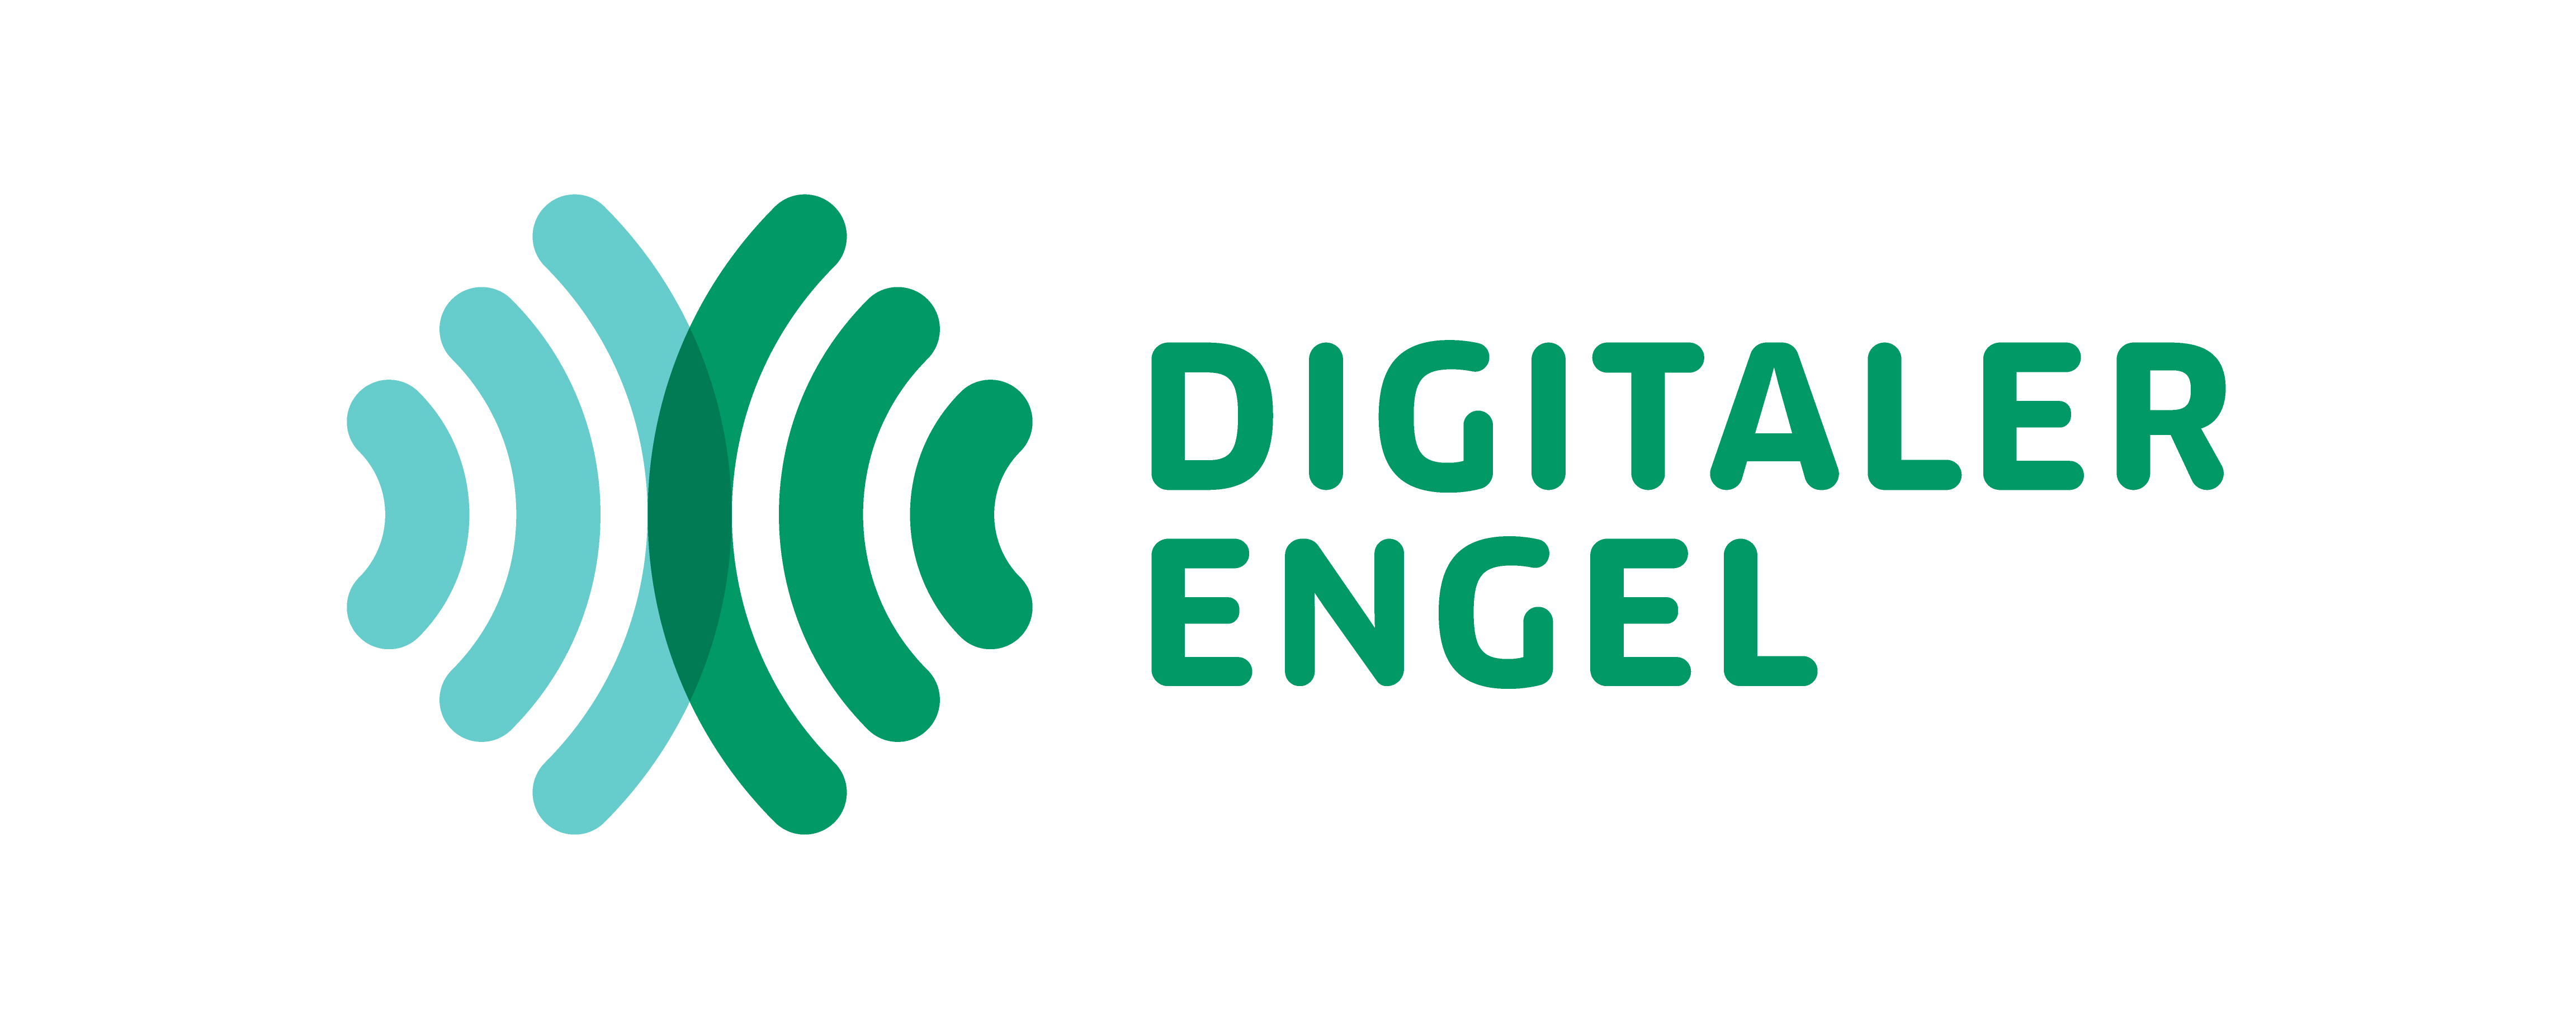 Digitaler Engel Logo